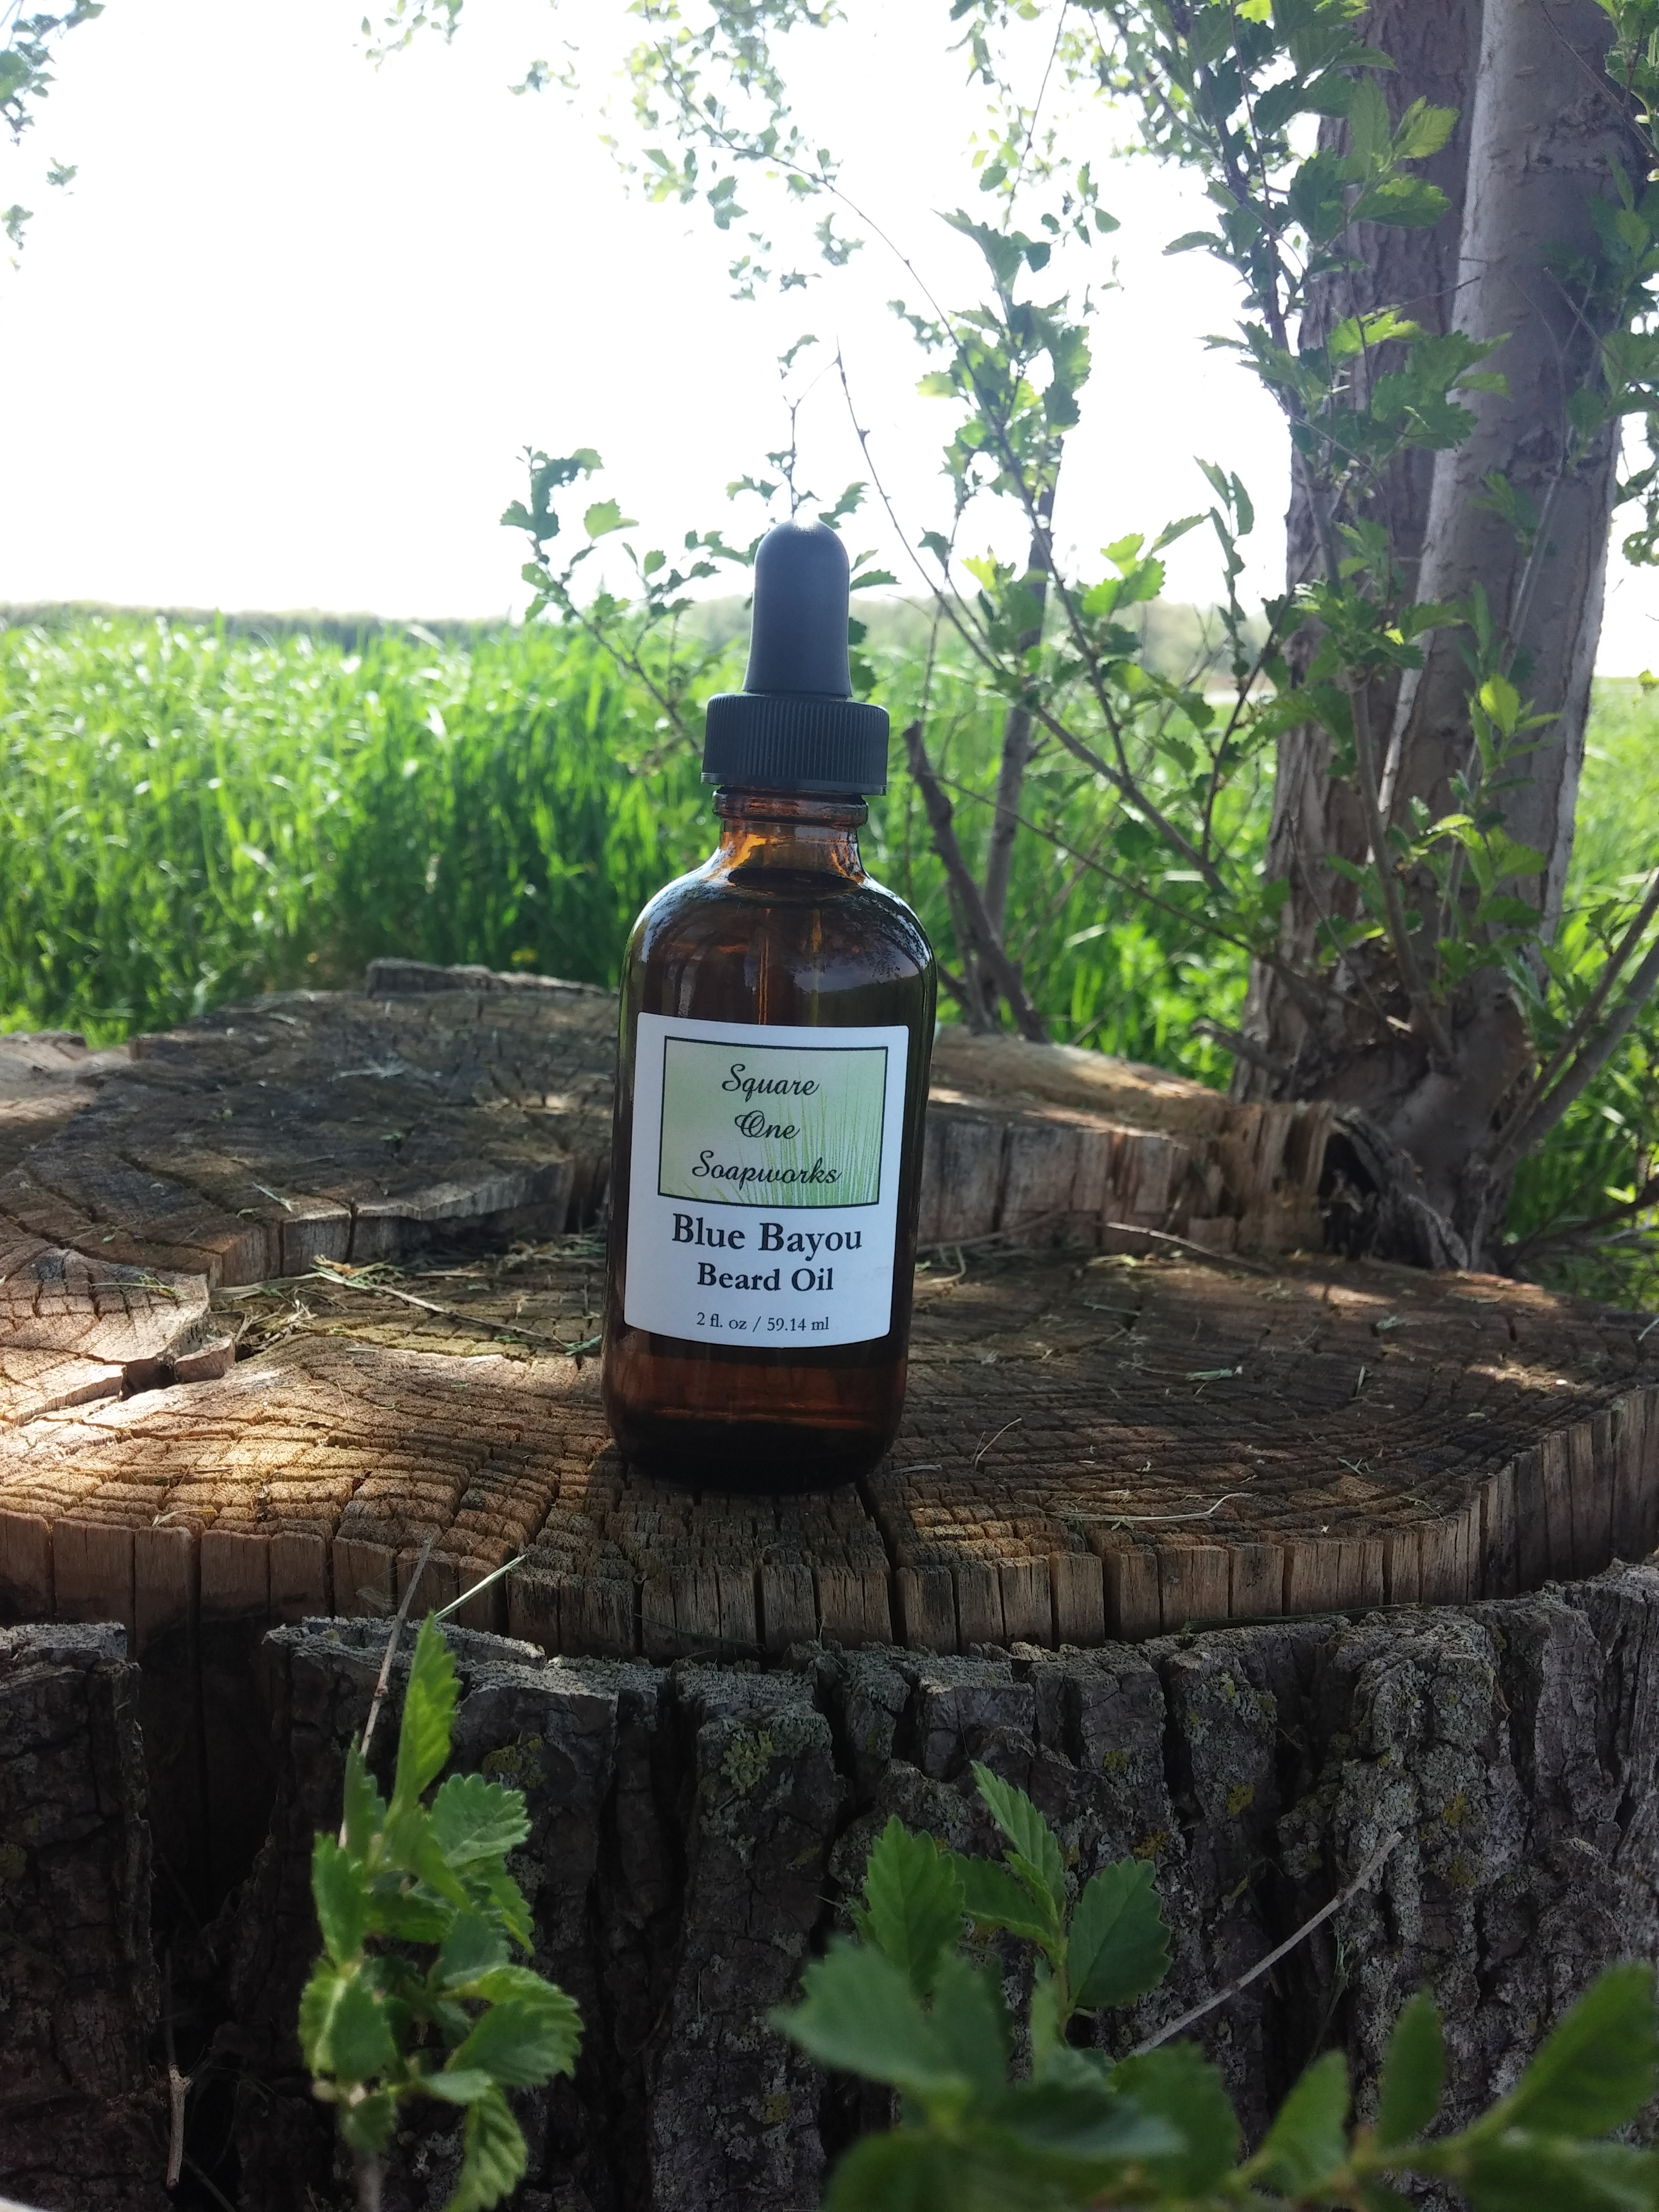 Blue Bayou Beard Oil - Square One Soapworks